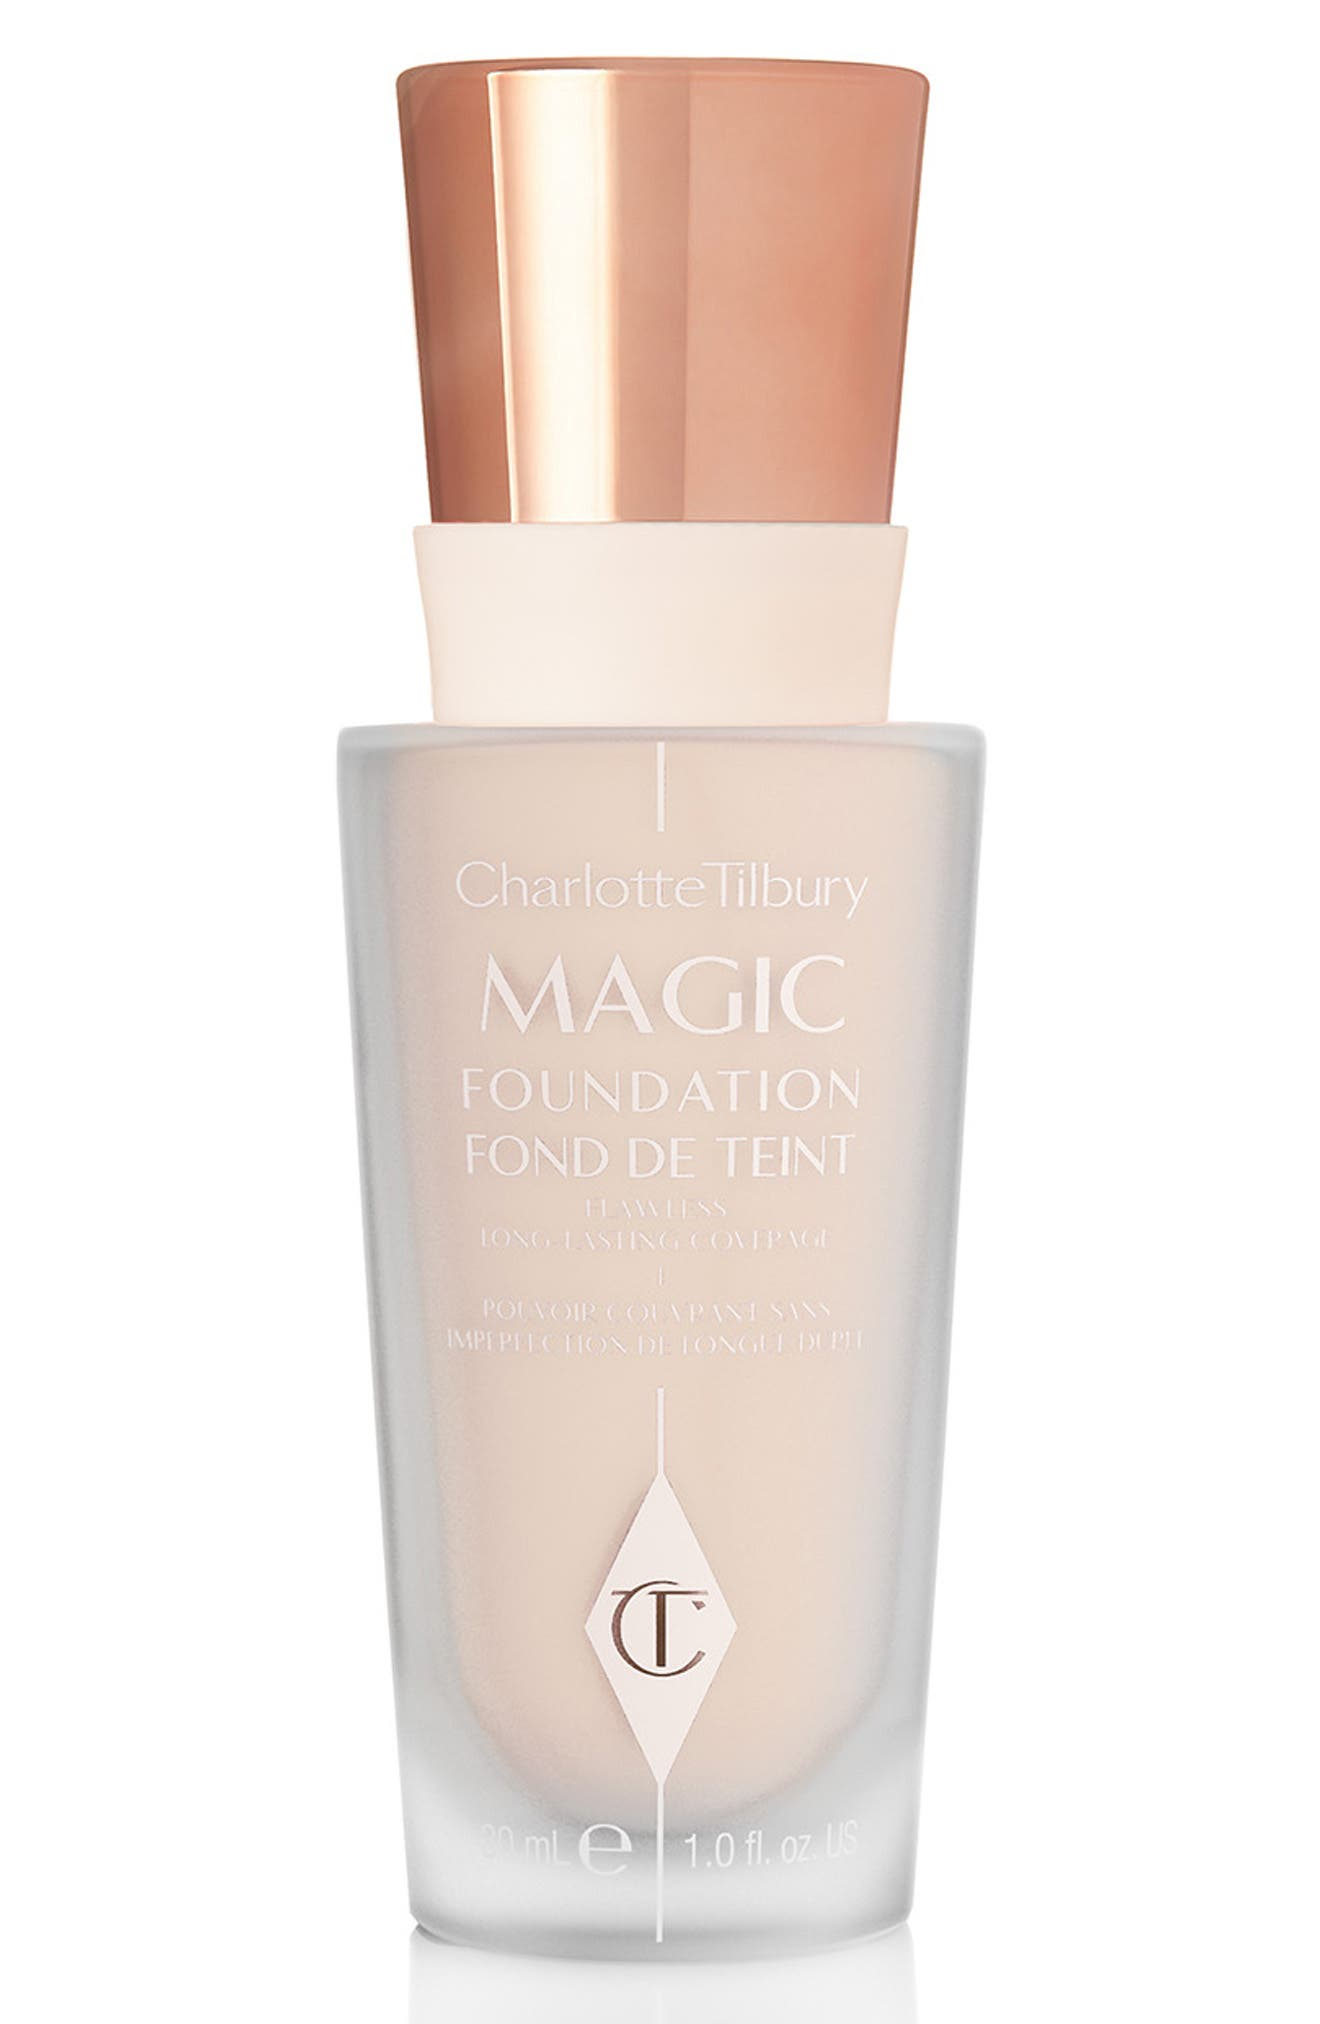 CHARLOTTE TILBURY MAGIC FOUNDATION BROAD SPECTRUM SPF 15 - 2 FAIR